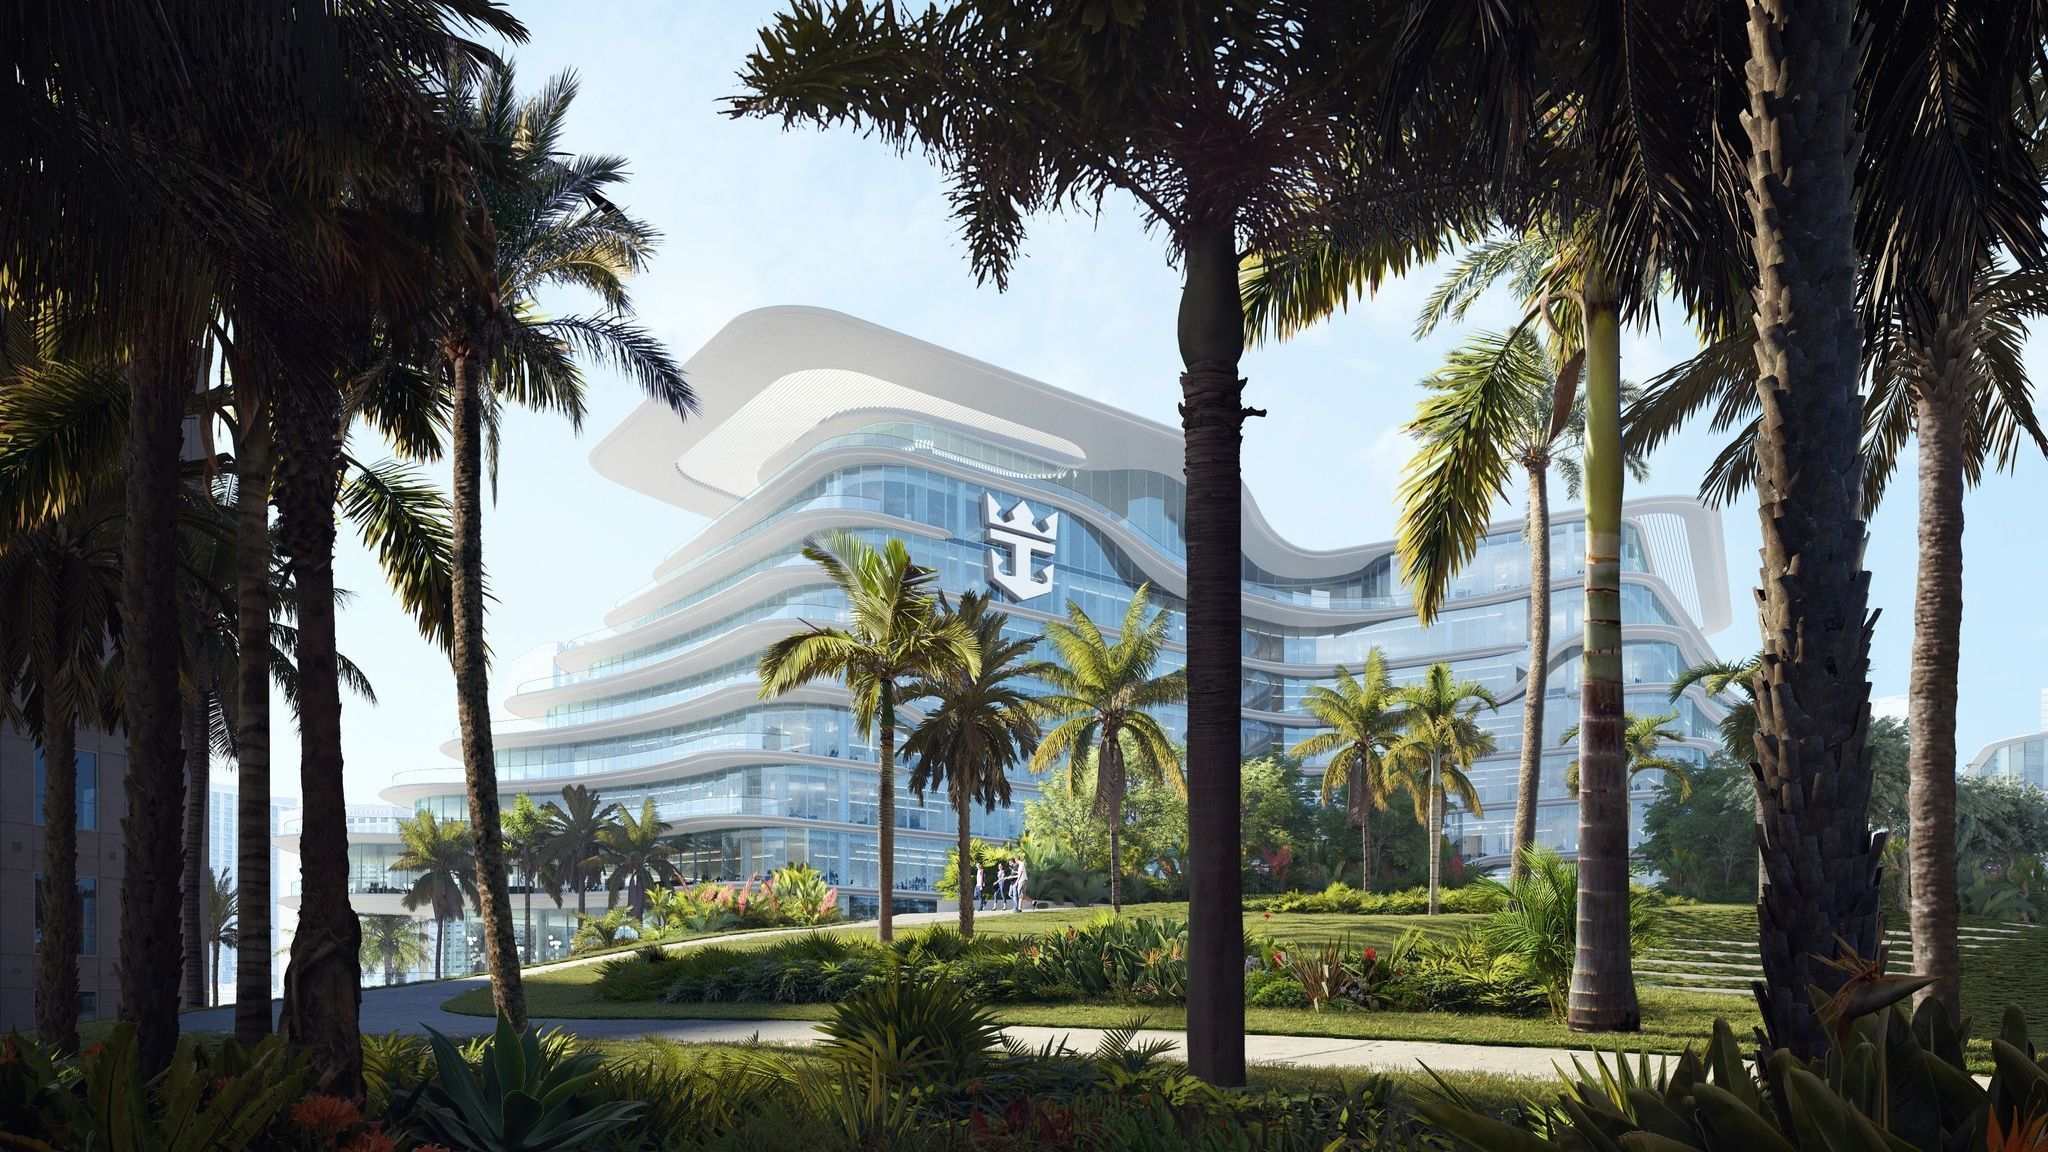 Is that a cruise ship or an office building? Royal Caribbean's proposed new Miami headquarters is ship shape